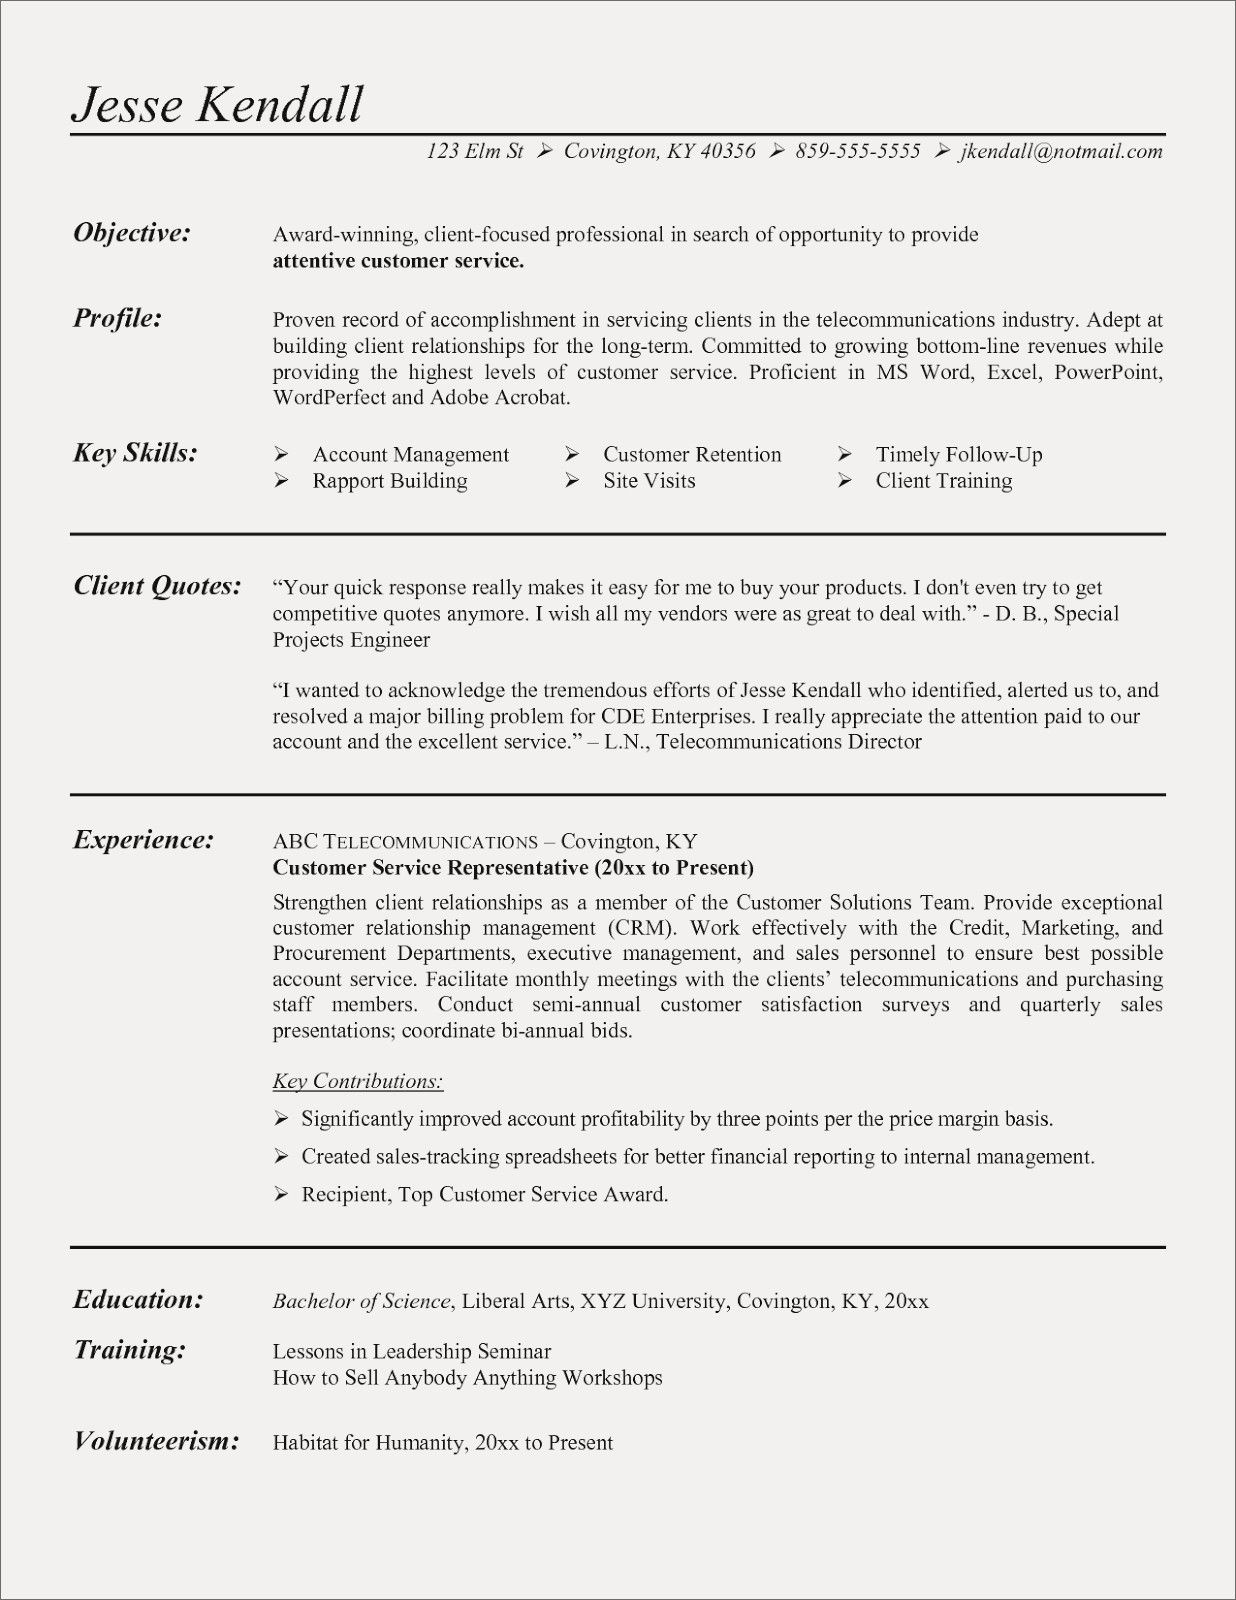 Resume Templates Beautiful Images Resume Templates